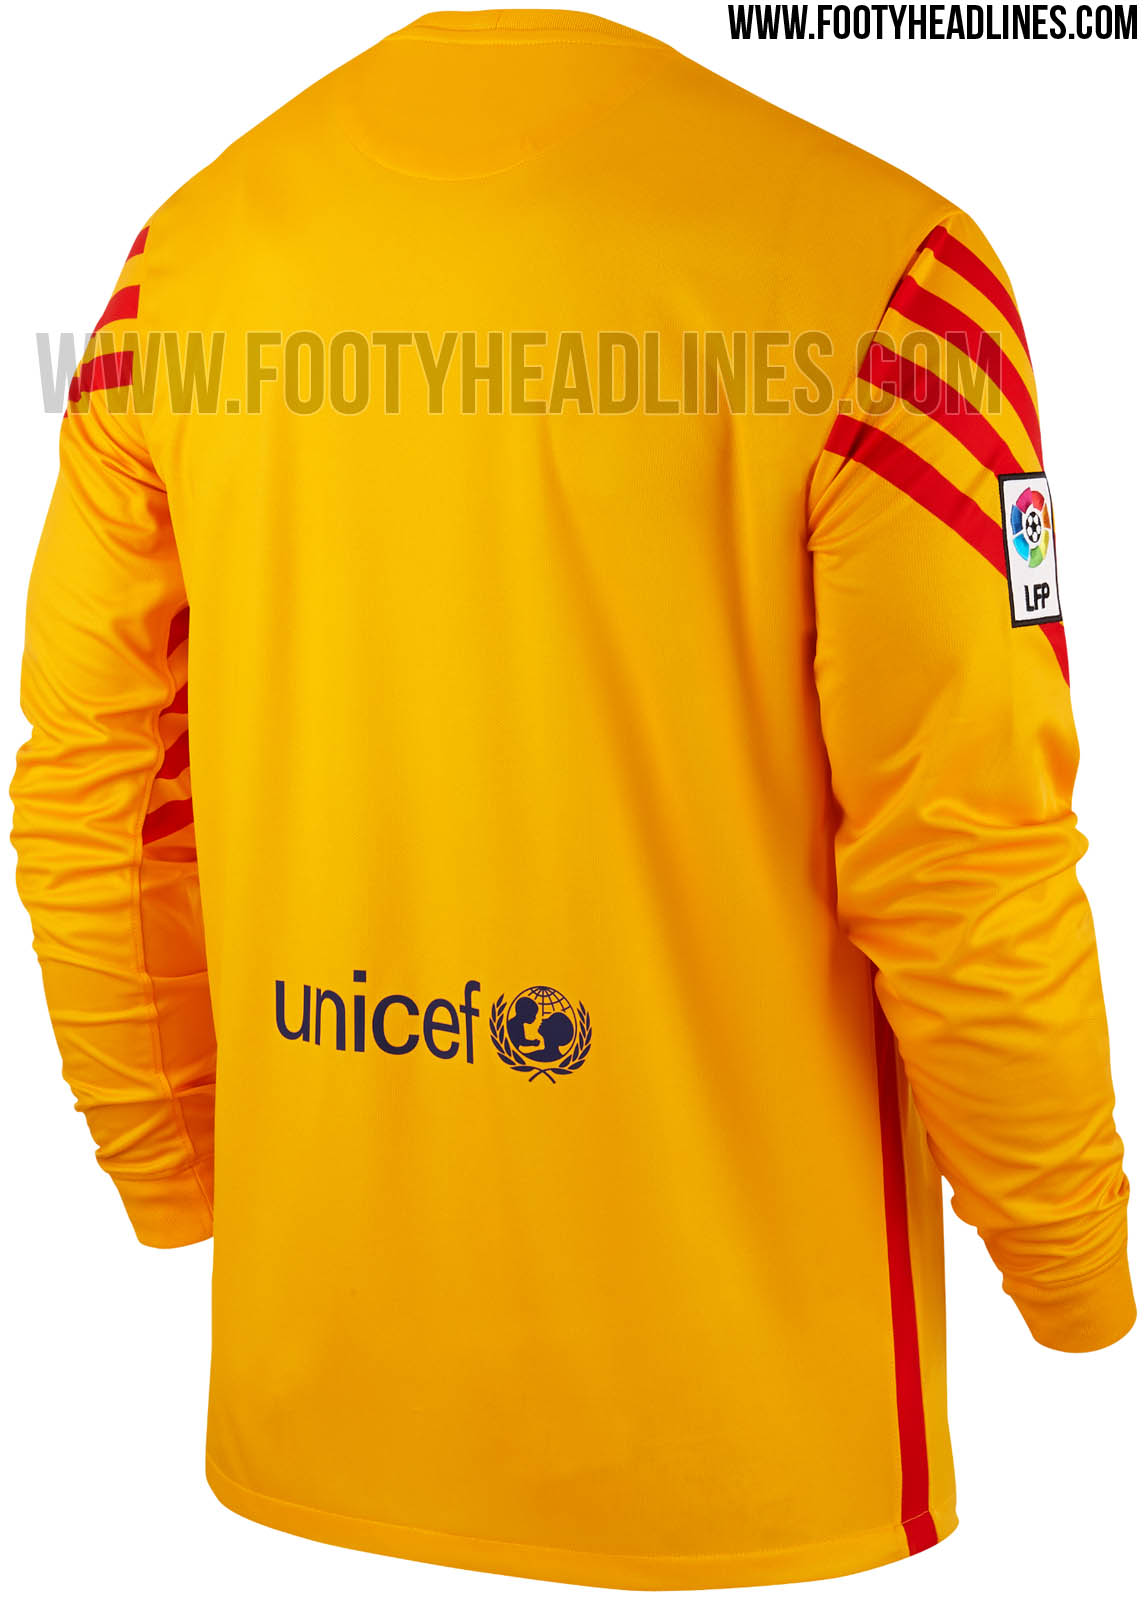 online store 69025 09a92 Fc Barcelona Goalkeeper Jersey 2016 Results